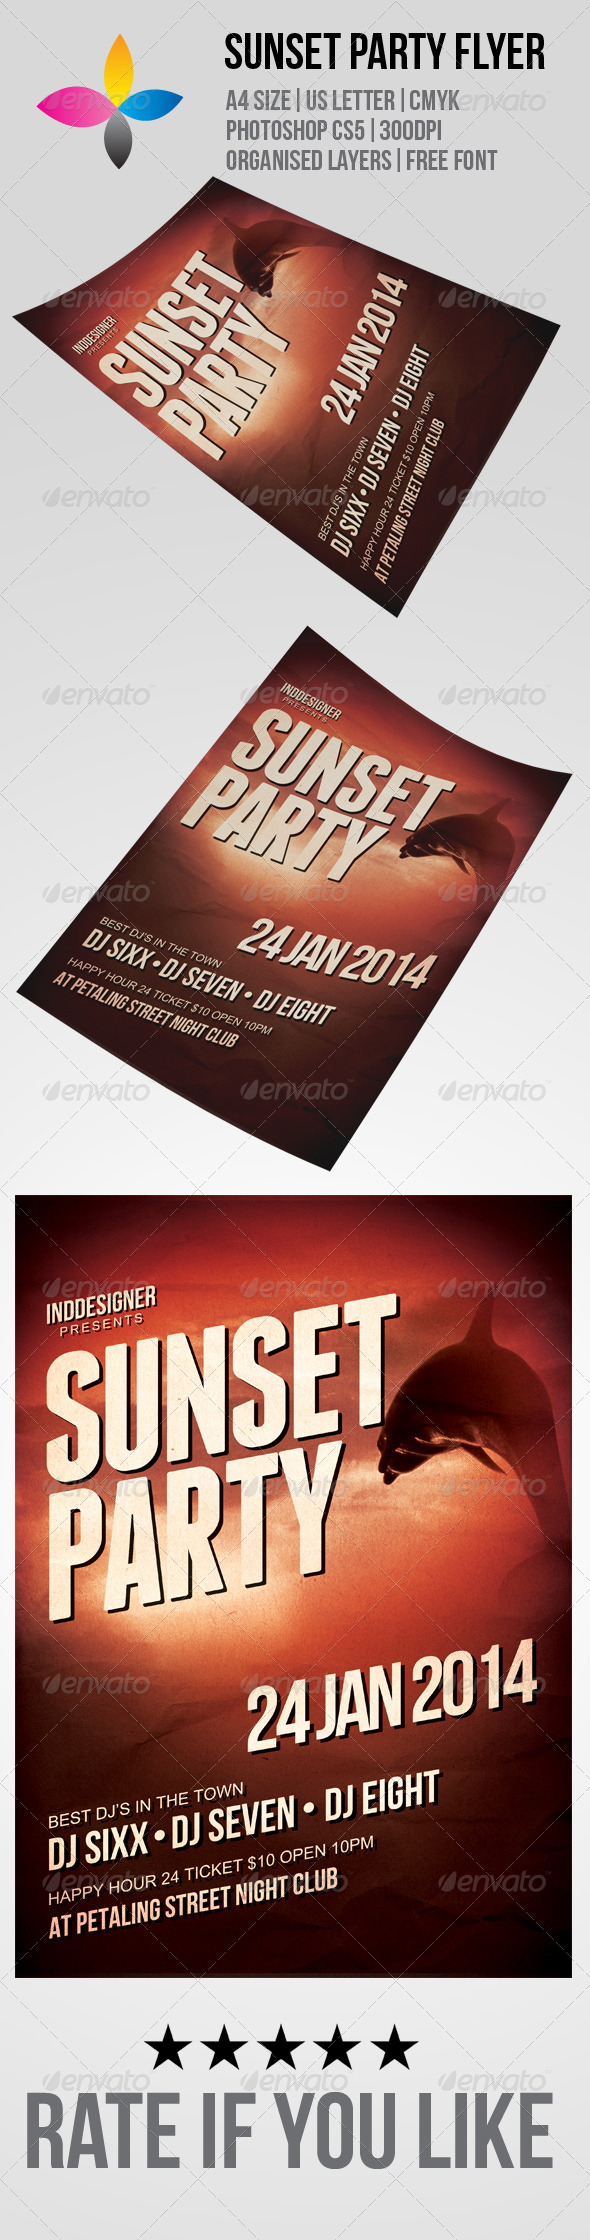 Sunset Party Flyer - Flyers Print Templates